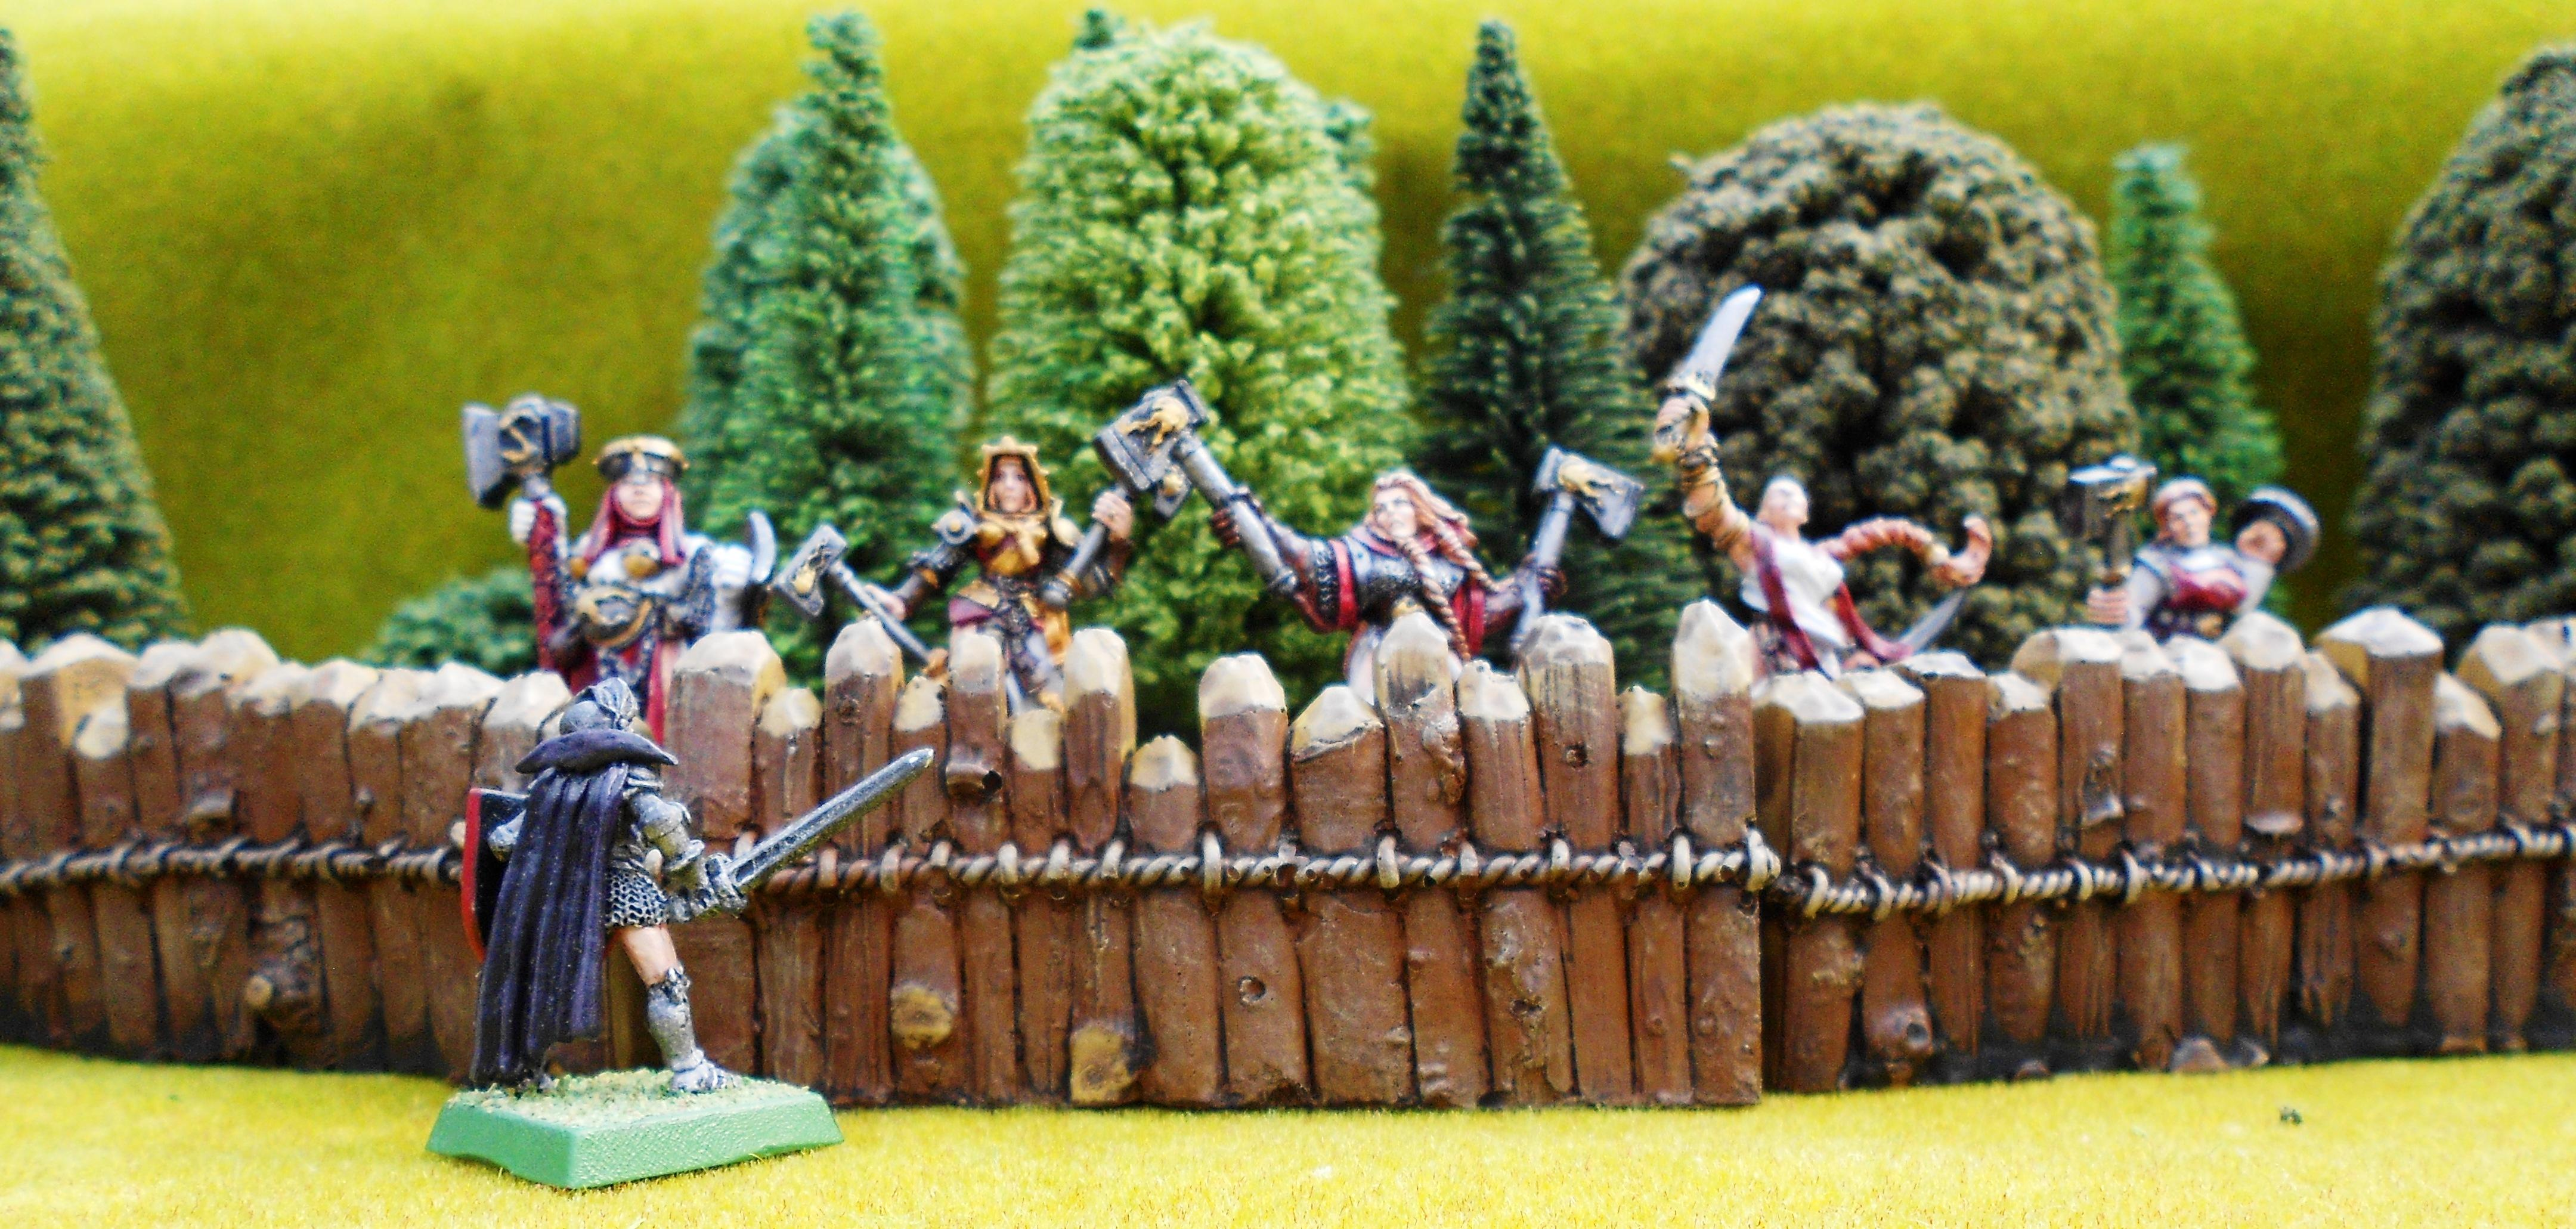 28mm, 35mm, Barricades, Dungeon, Fantasius, Fantasy Scenery, Fortress, Hand Cast, Keep, Mordheim, New, Palisade, Parapets, Rare, Resin, Roleplay, Rpg, Science-fiction, Terrain, Walls, Wargames Bakery, Wargamesbakery, Wargamesbakery.co.uk, Warhammer Fantasy, Wgb